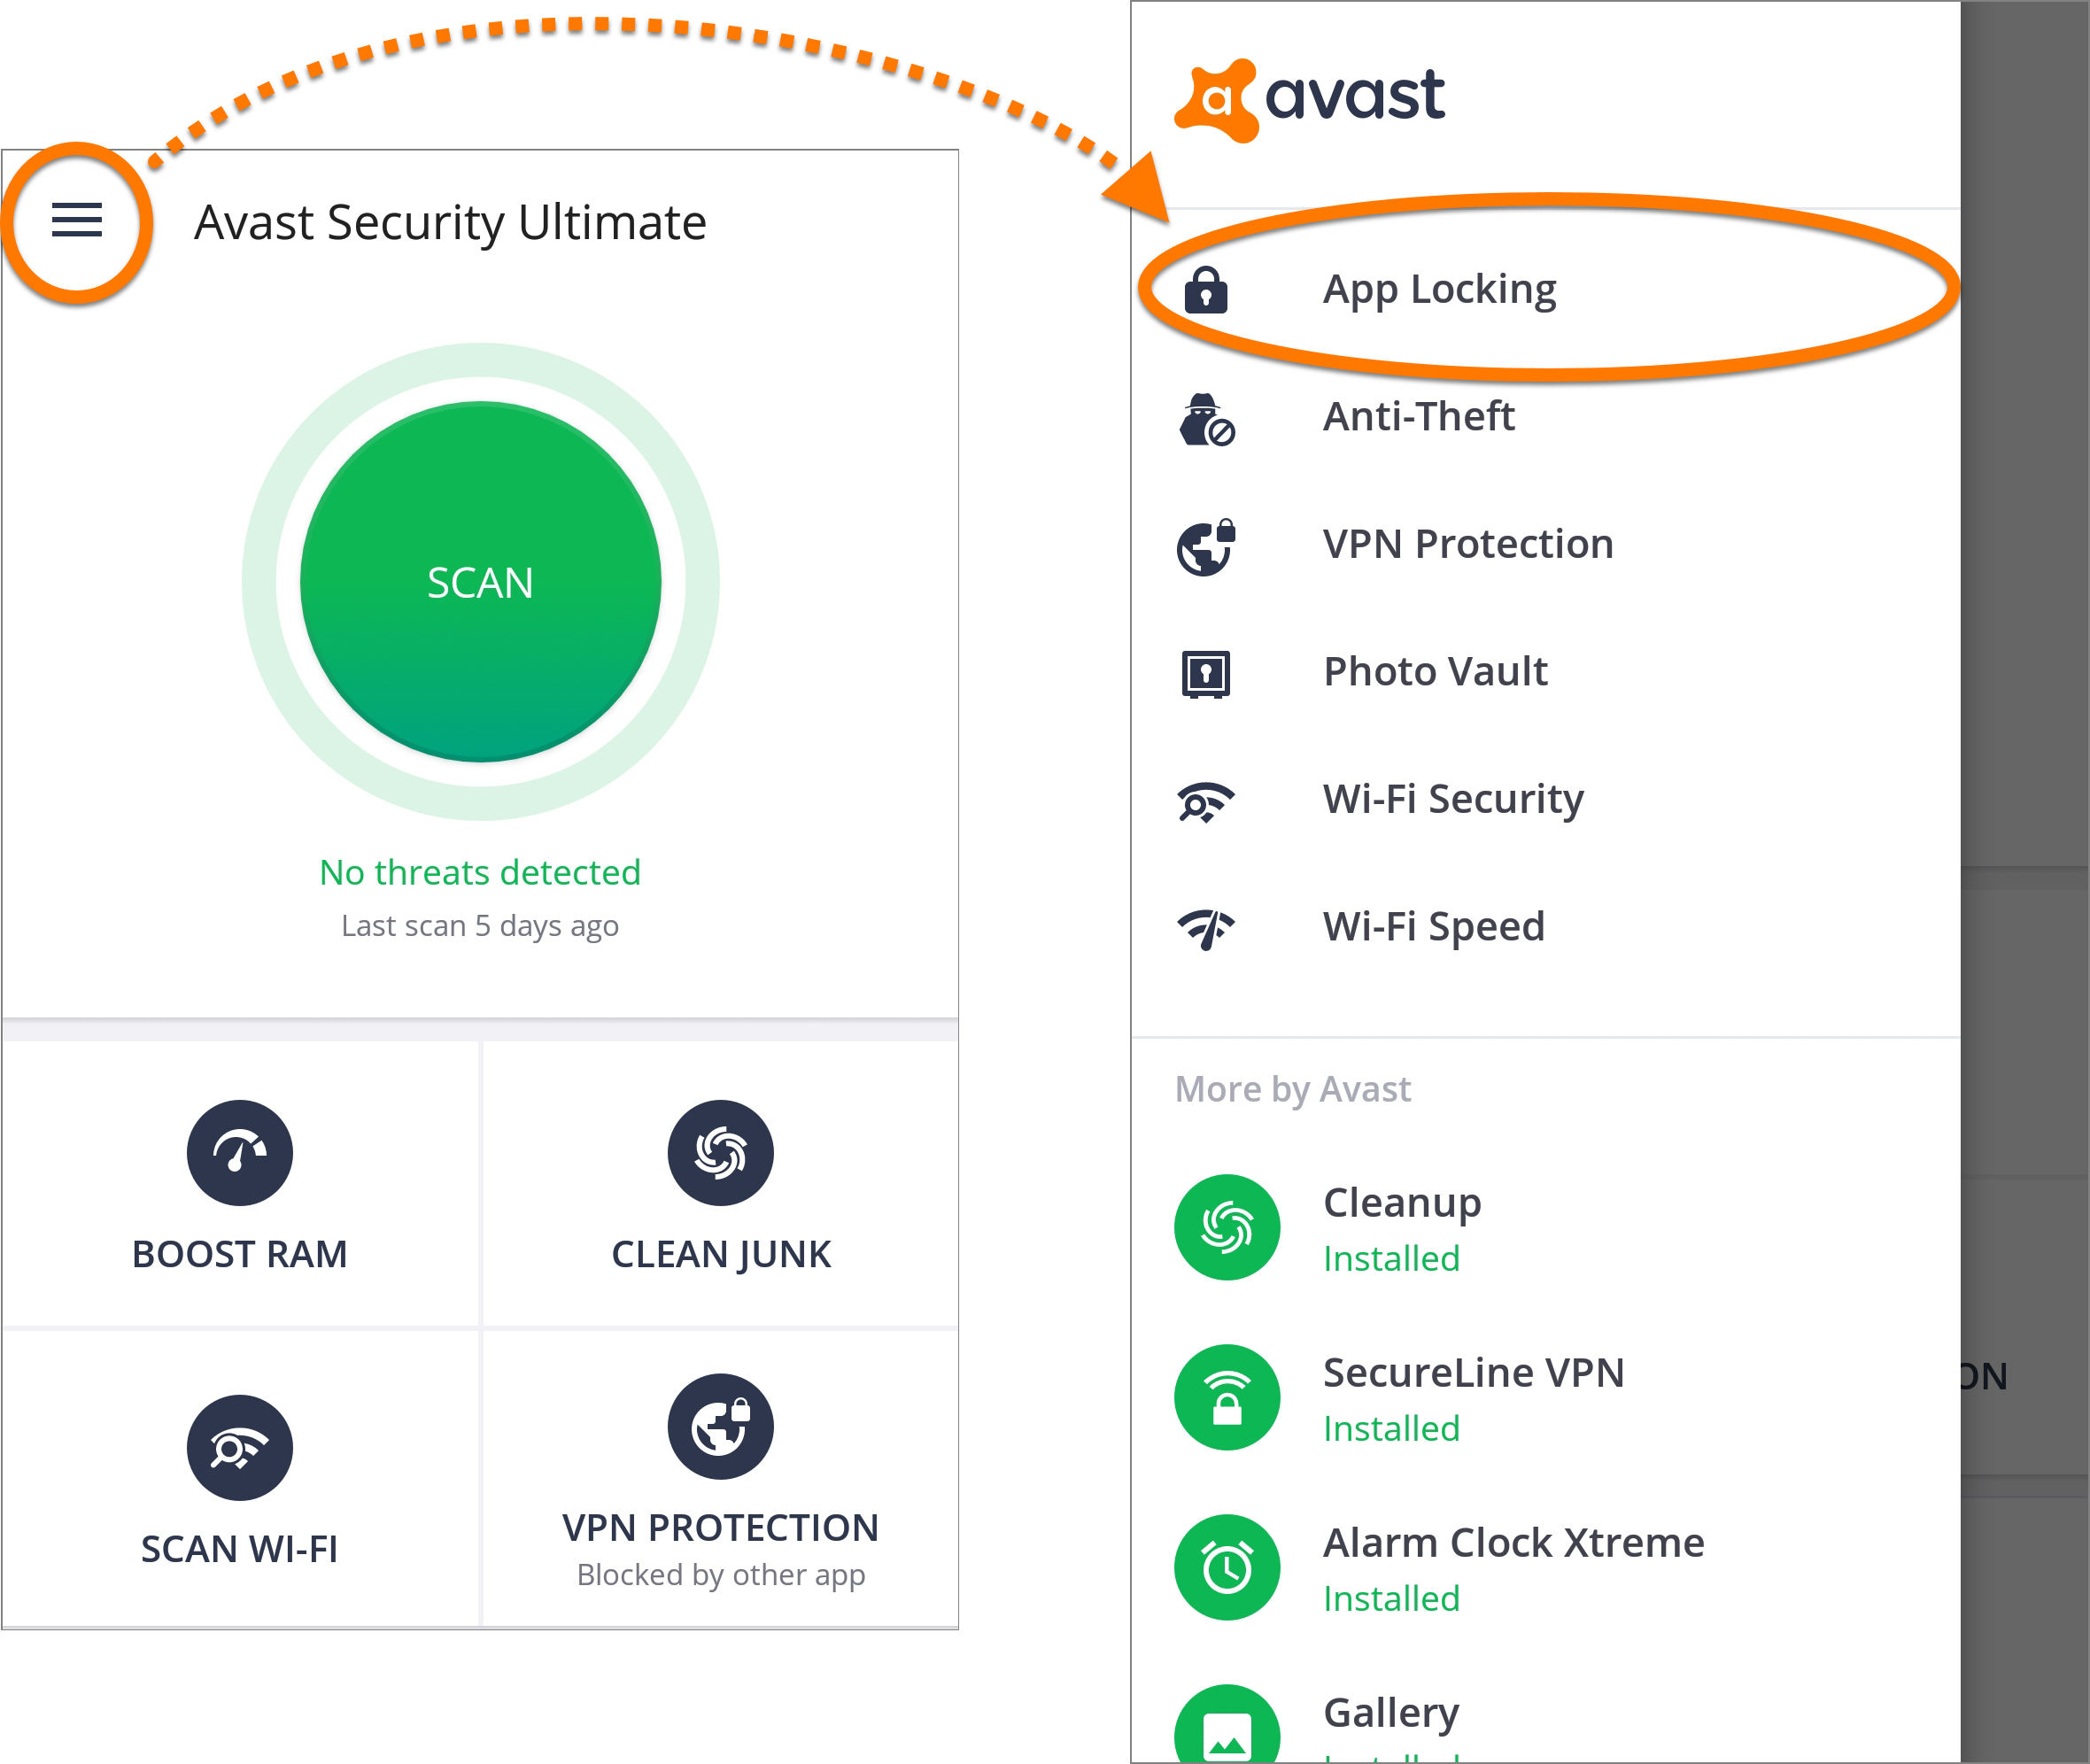 Avast Mobile Security for Android - Getting Started | Official Avast